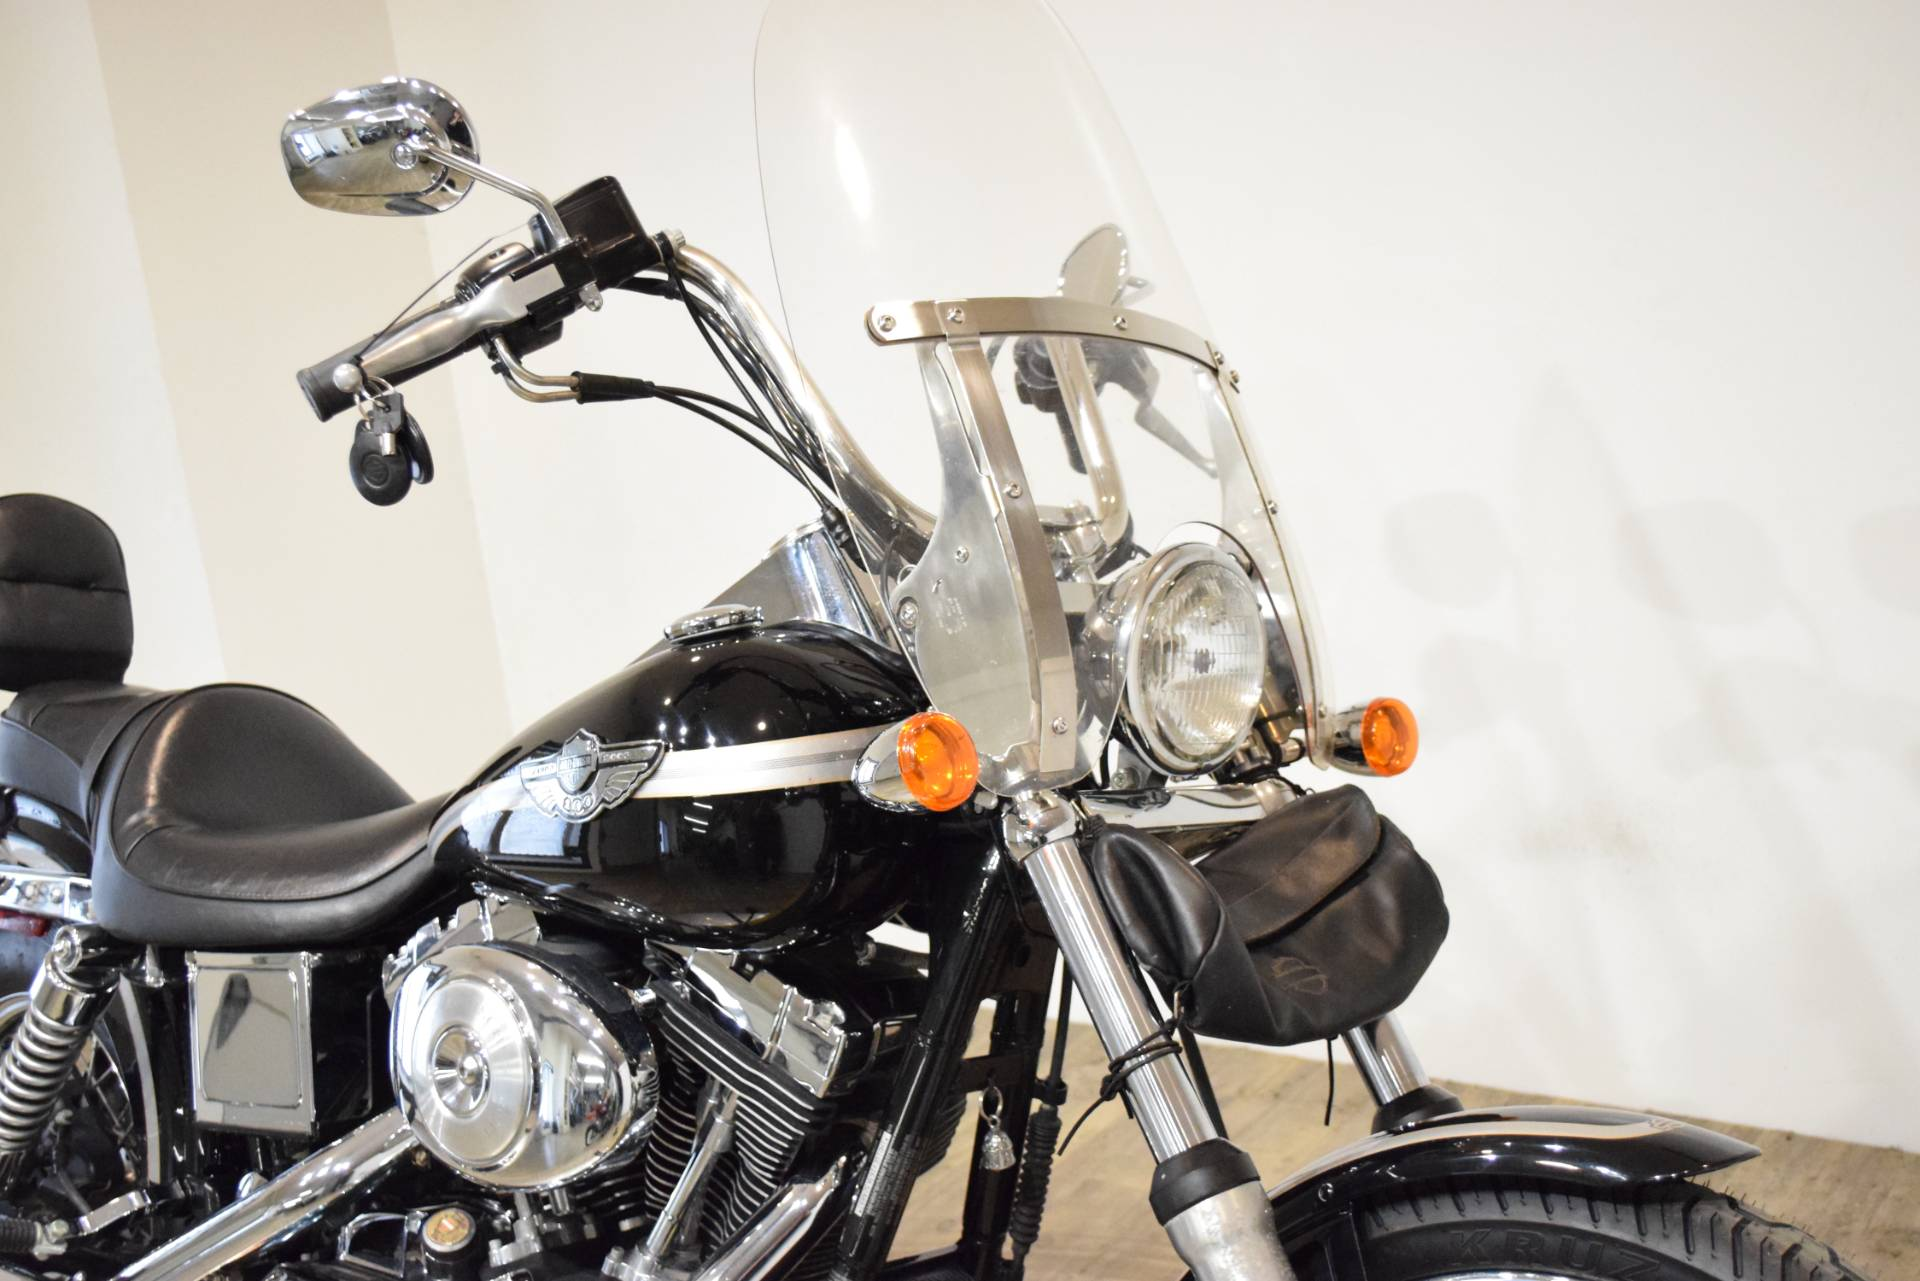 2003 Harley-Davidson FXDWG Dyna Wide Glide® in Wauconda, Illinois - Photo 3